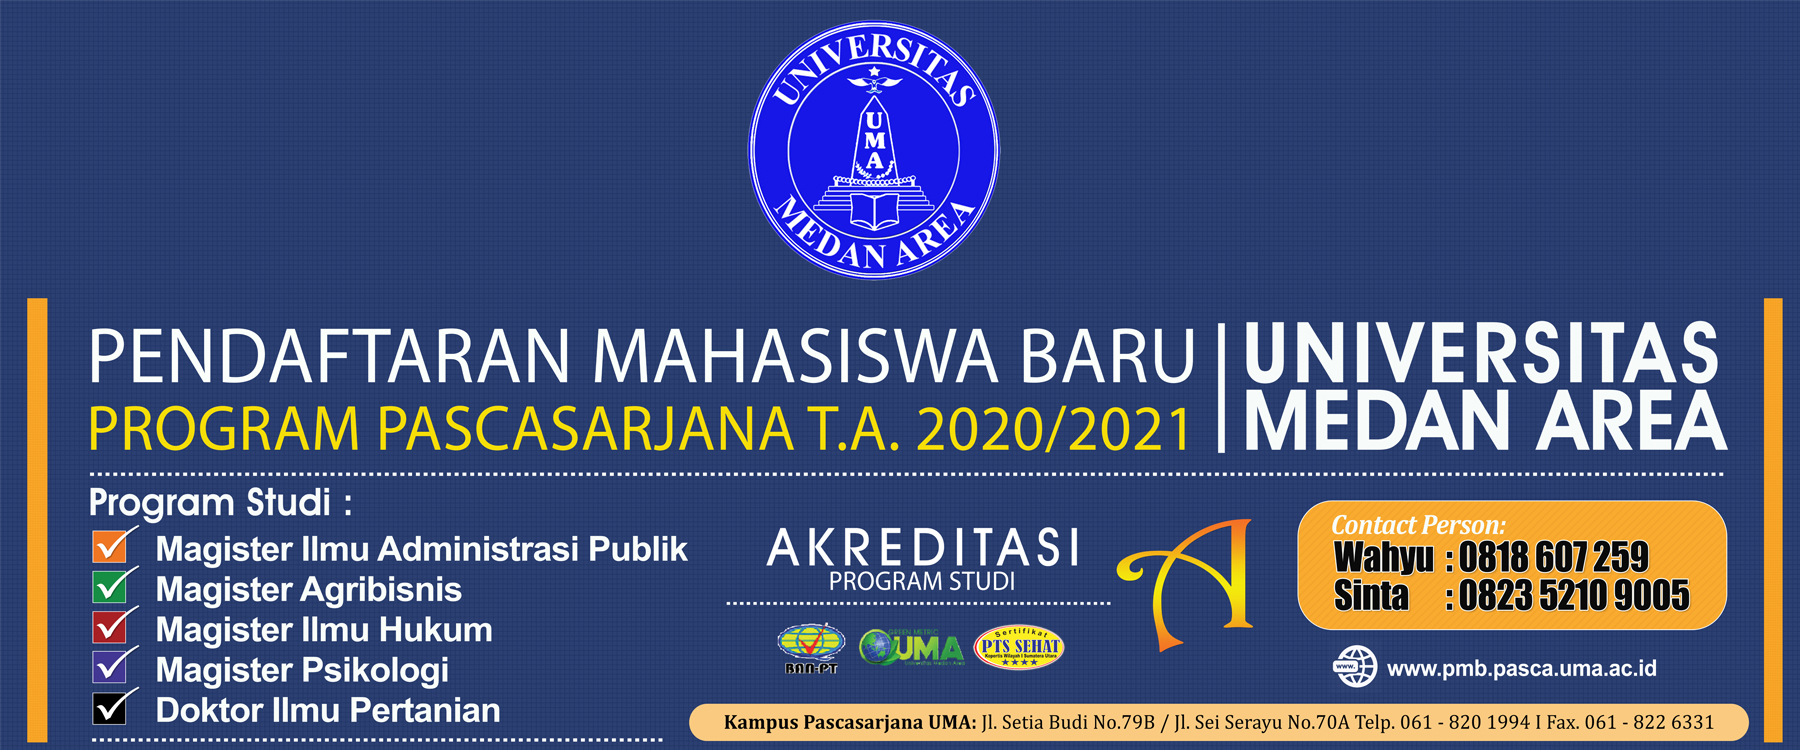 Slider PMB Program Pascasarjana Universitas Medan Area TA 2020-2021